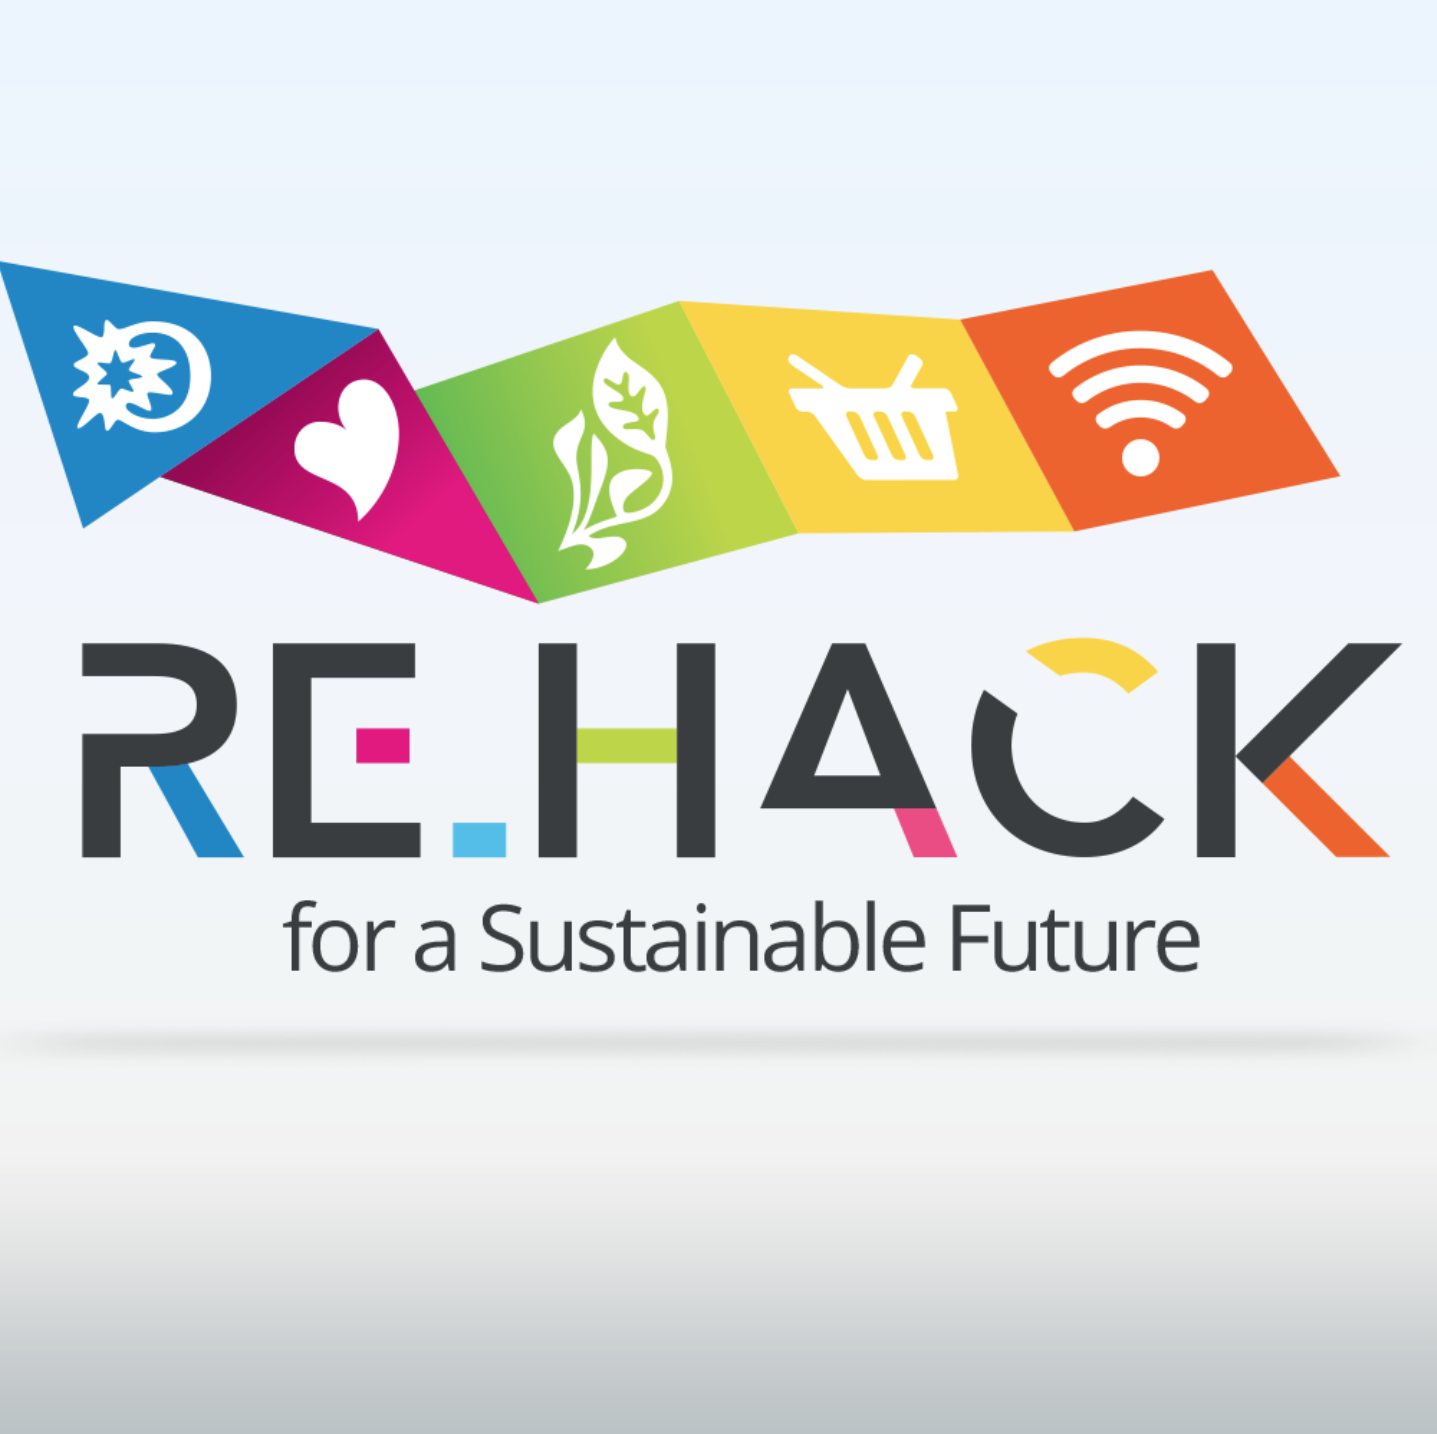 Unilever's ReHack 2015 fuels the business' sustainable future